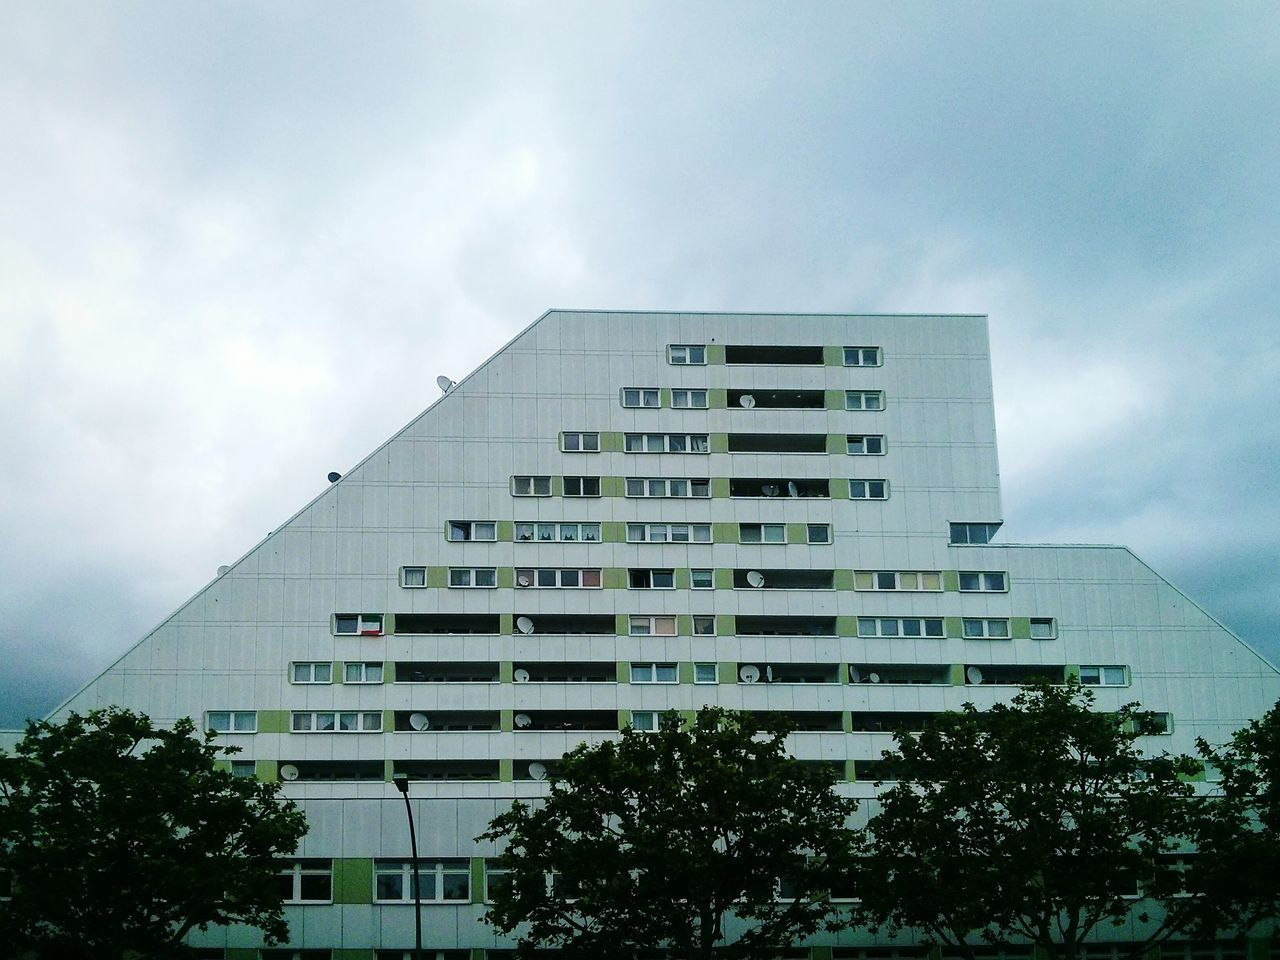 Plattenbau mit kick. Plattenbauromantik I Miss My Plattenbau Urban Geometry Architecture Open Edit : dont forget, what you still cannot see on open edit are the cropping options i used: full vertical correction, a little straighten...